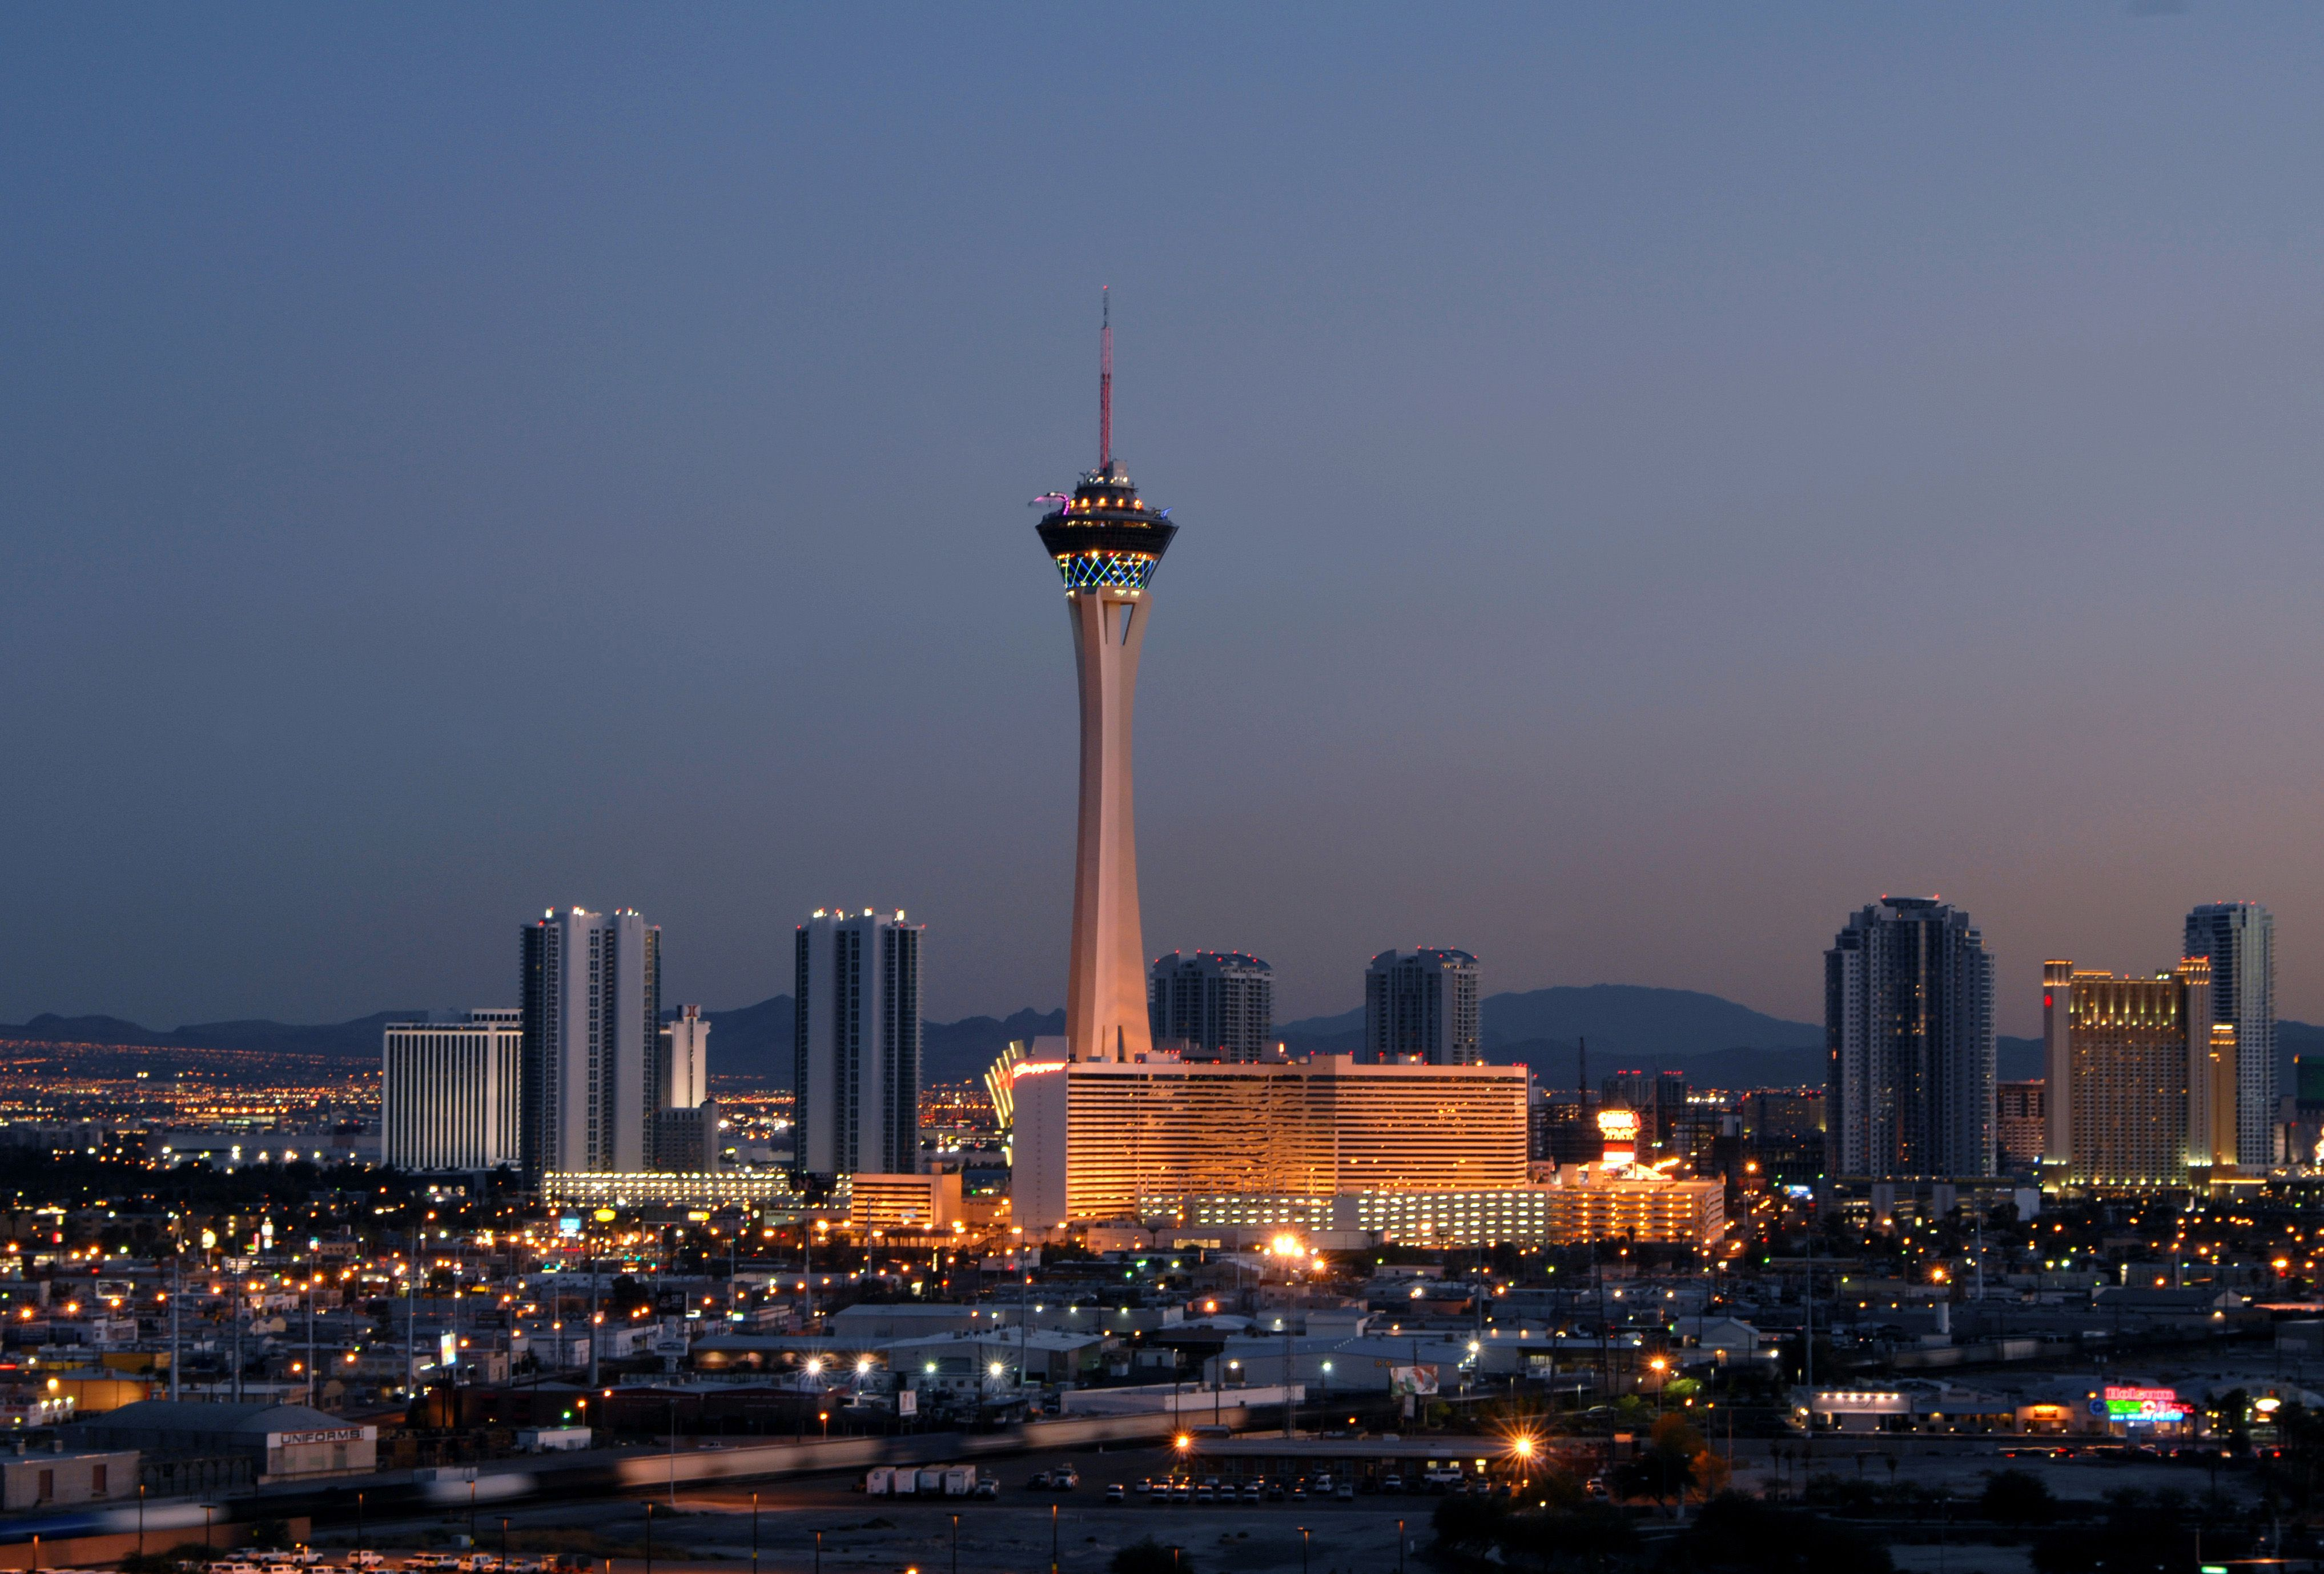 Las Vegas Stratosphere Tower Greets 40 Millionth Visitor